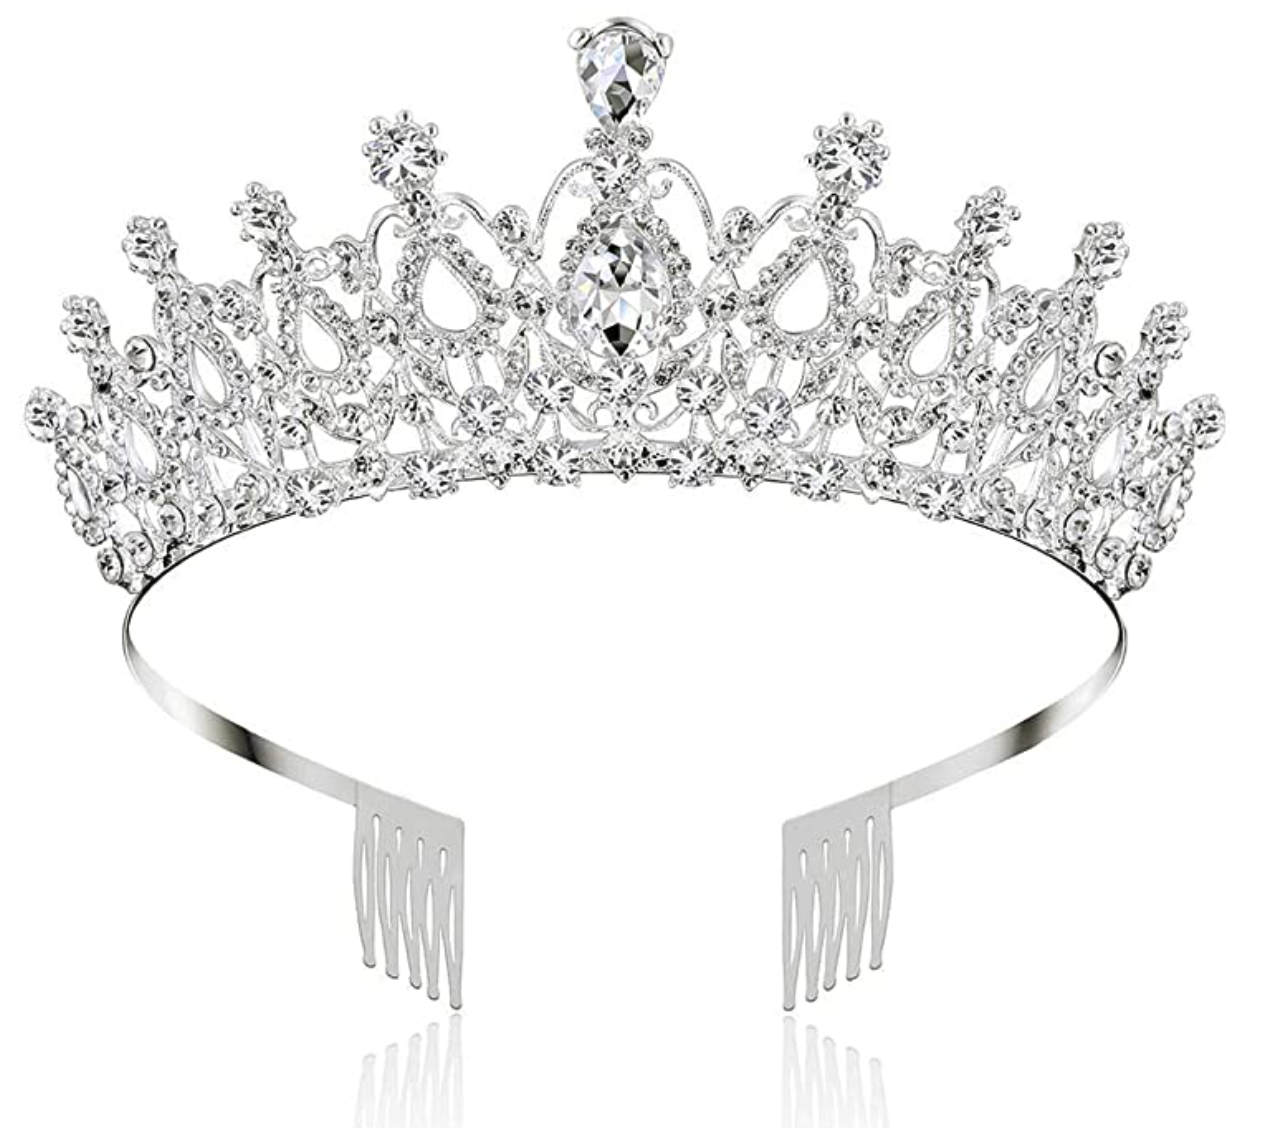 https://www.letilor.com/wp-content/uploads/2021/03/couronne-de-princesse.png